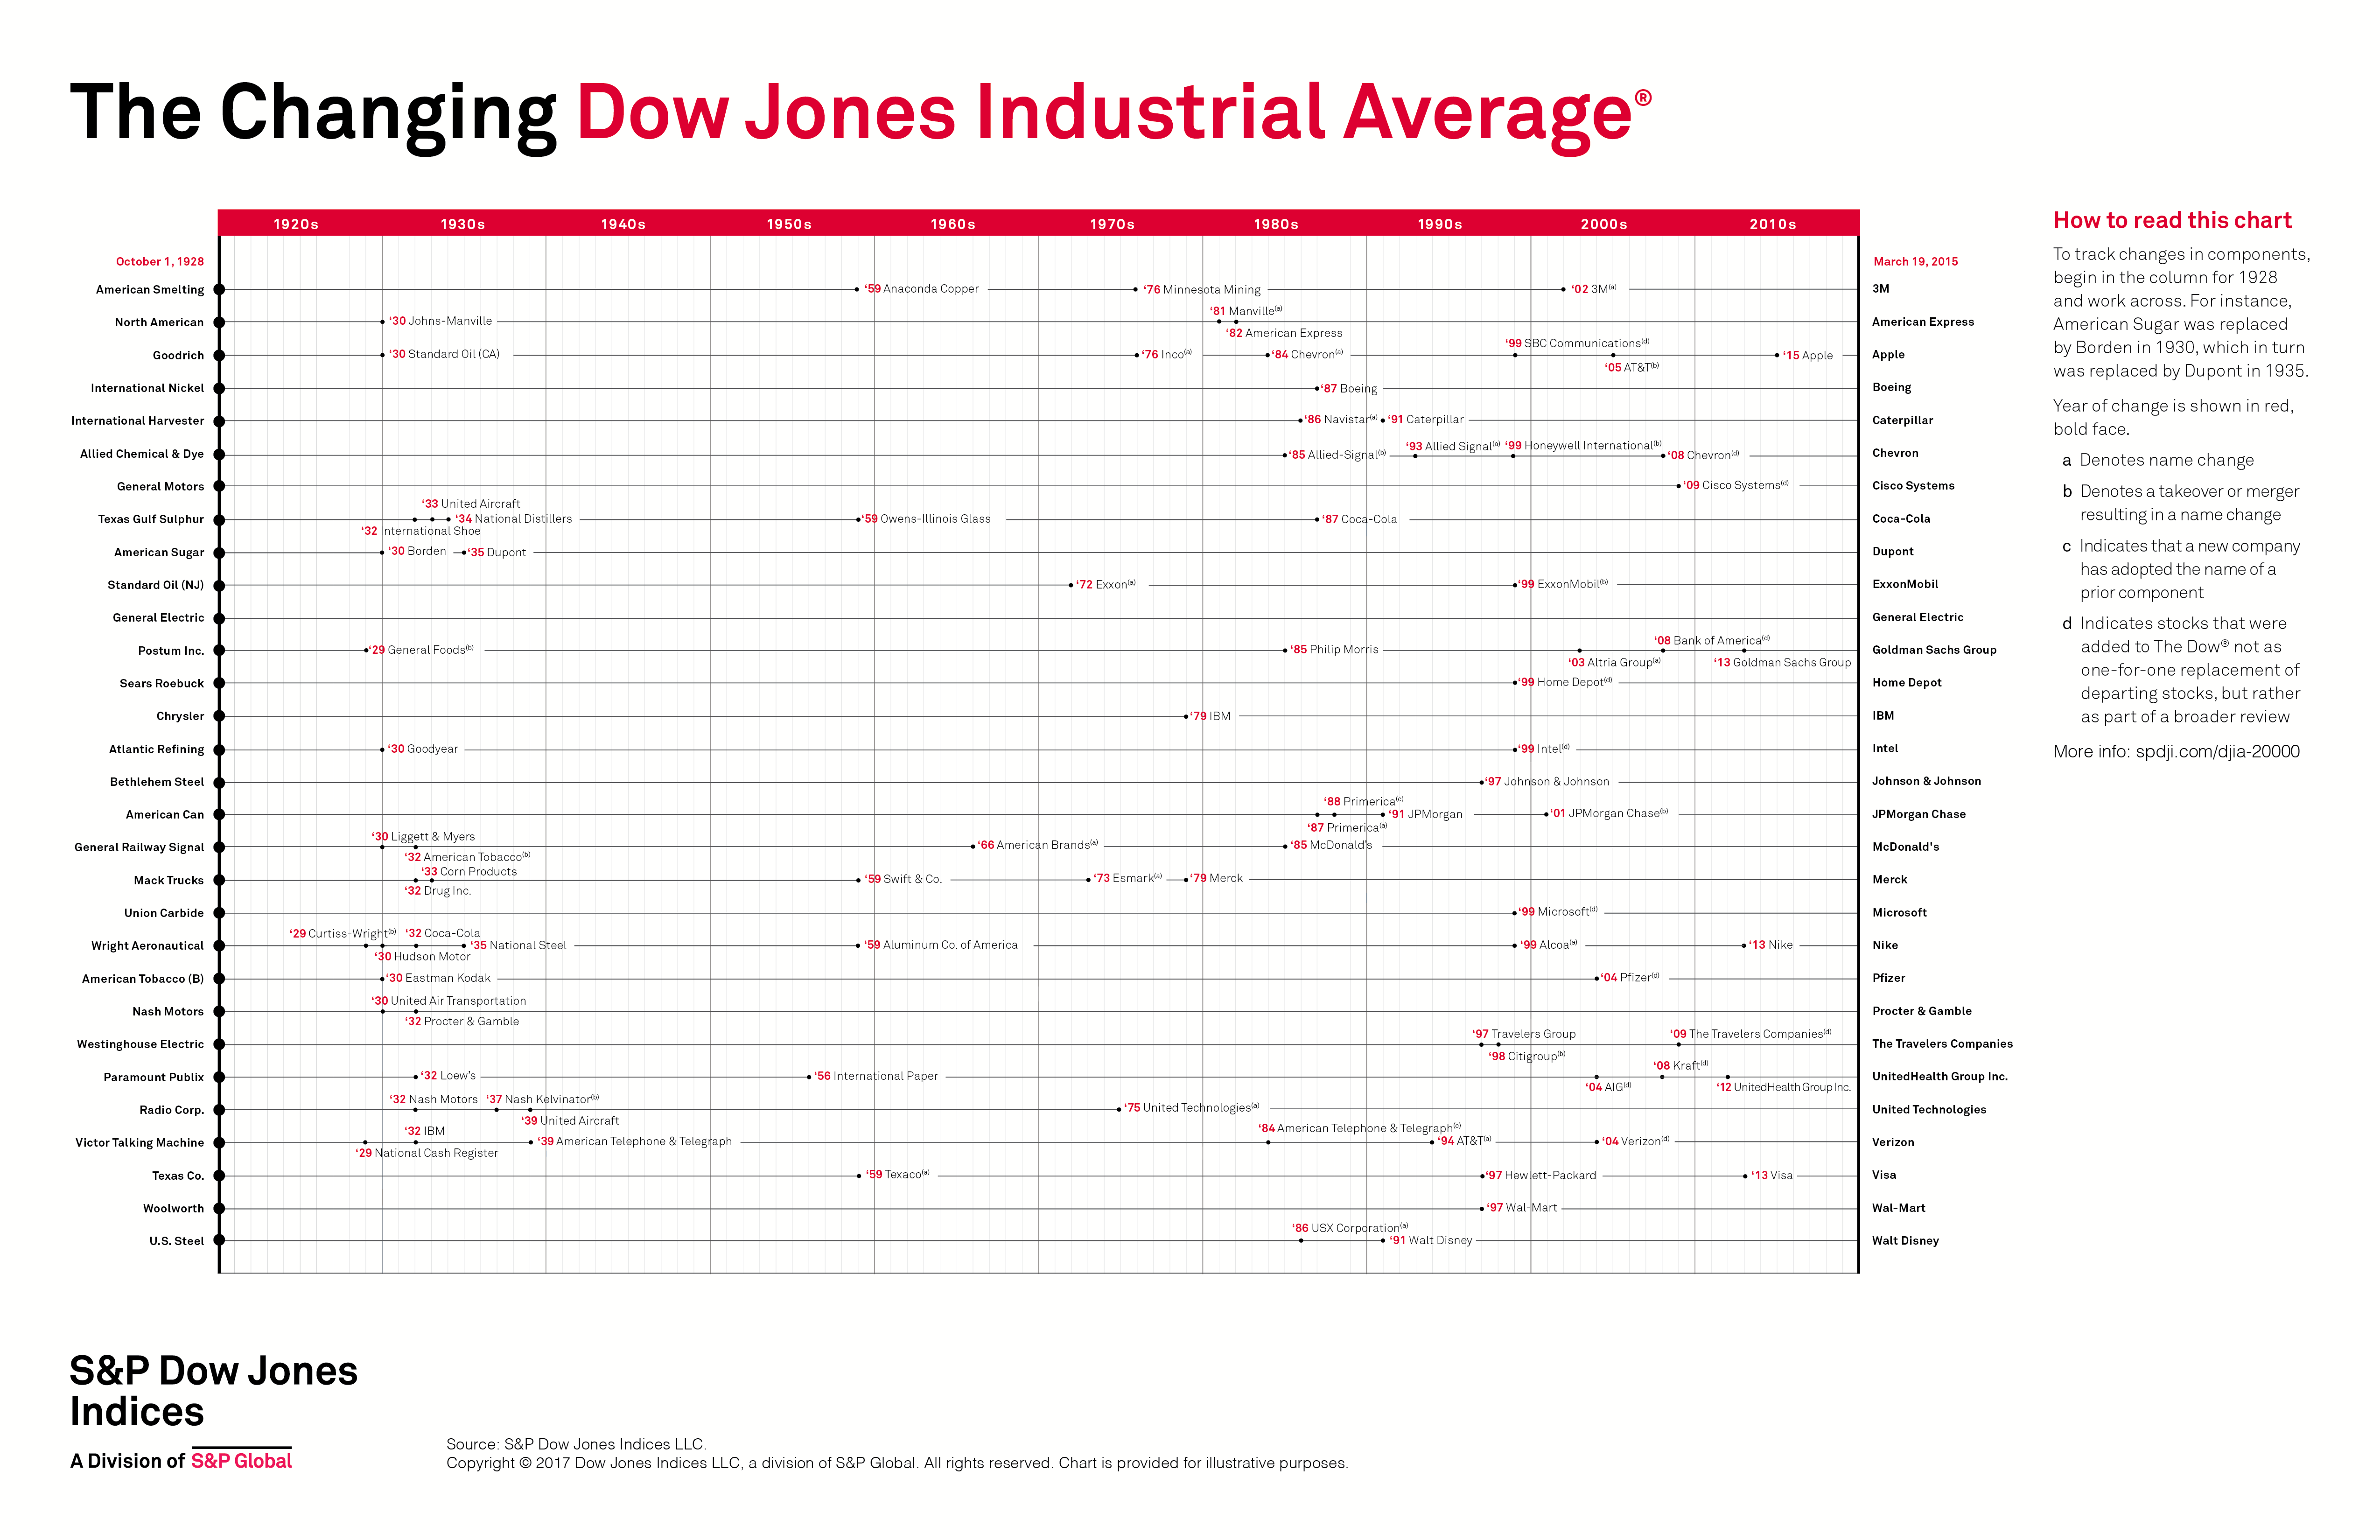 How has the DJIA evolved since 1928?